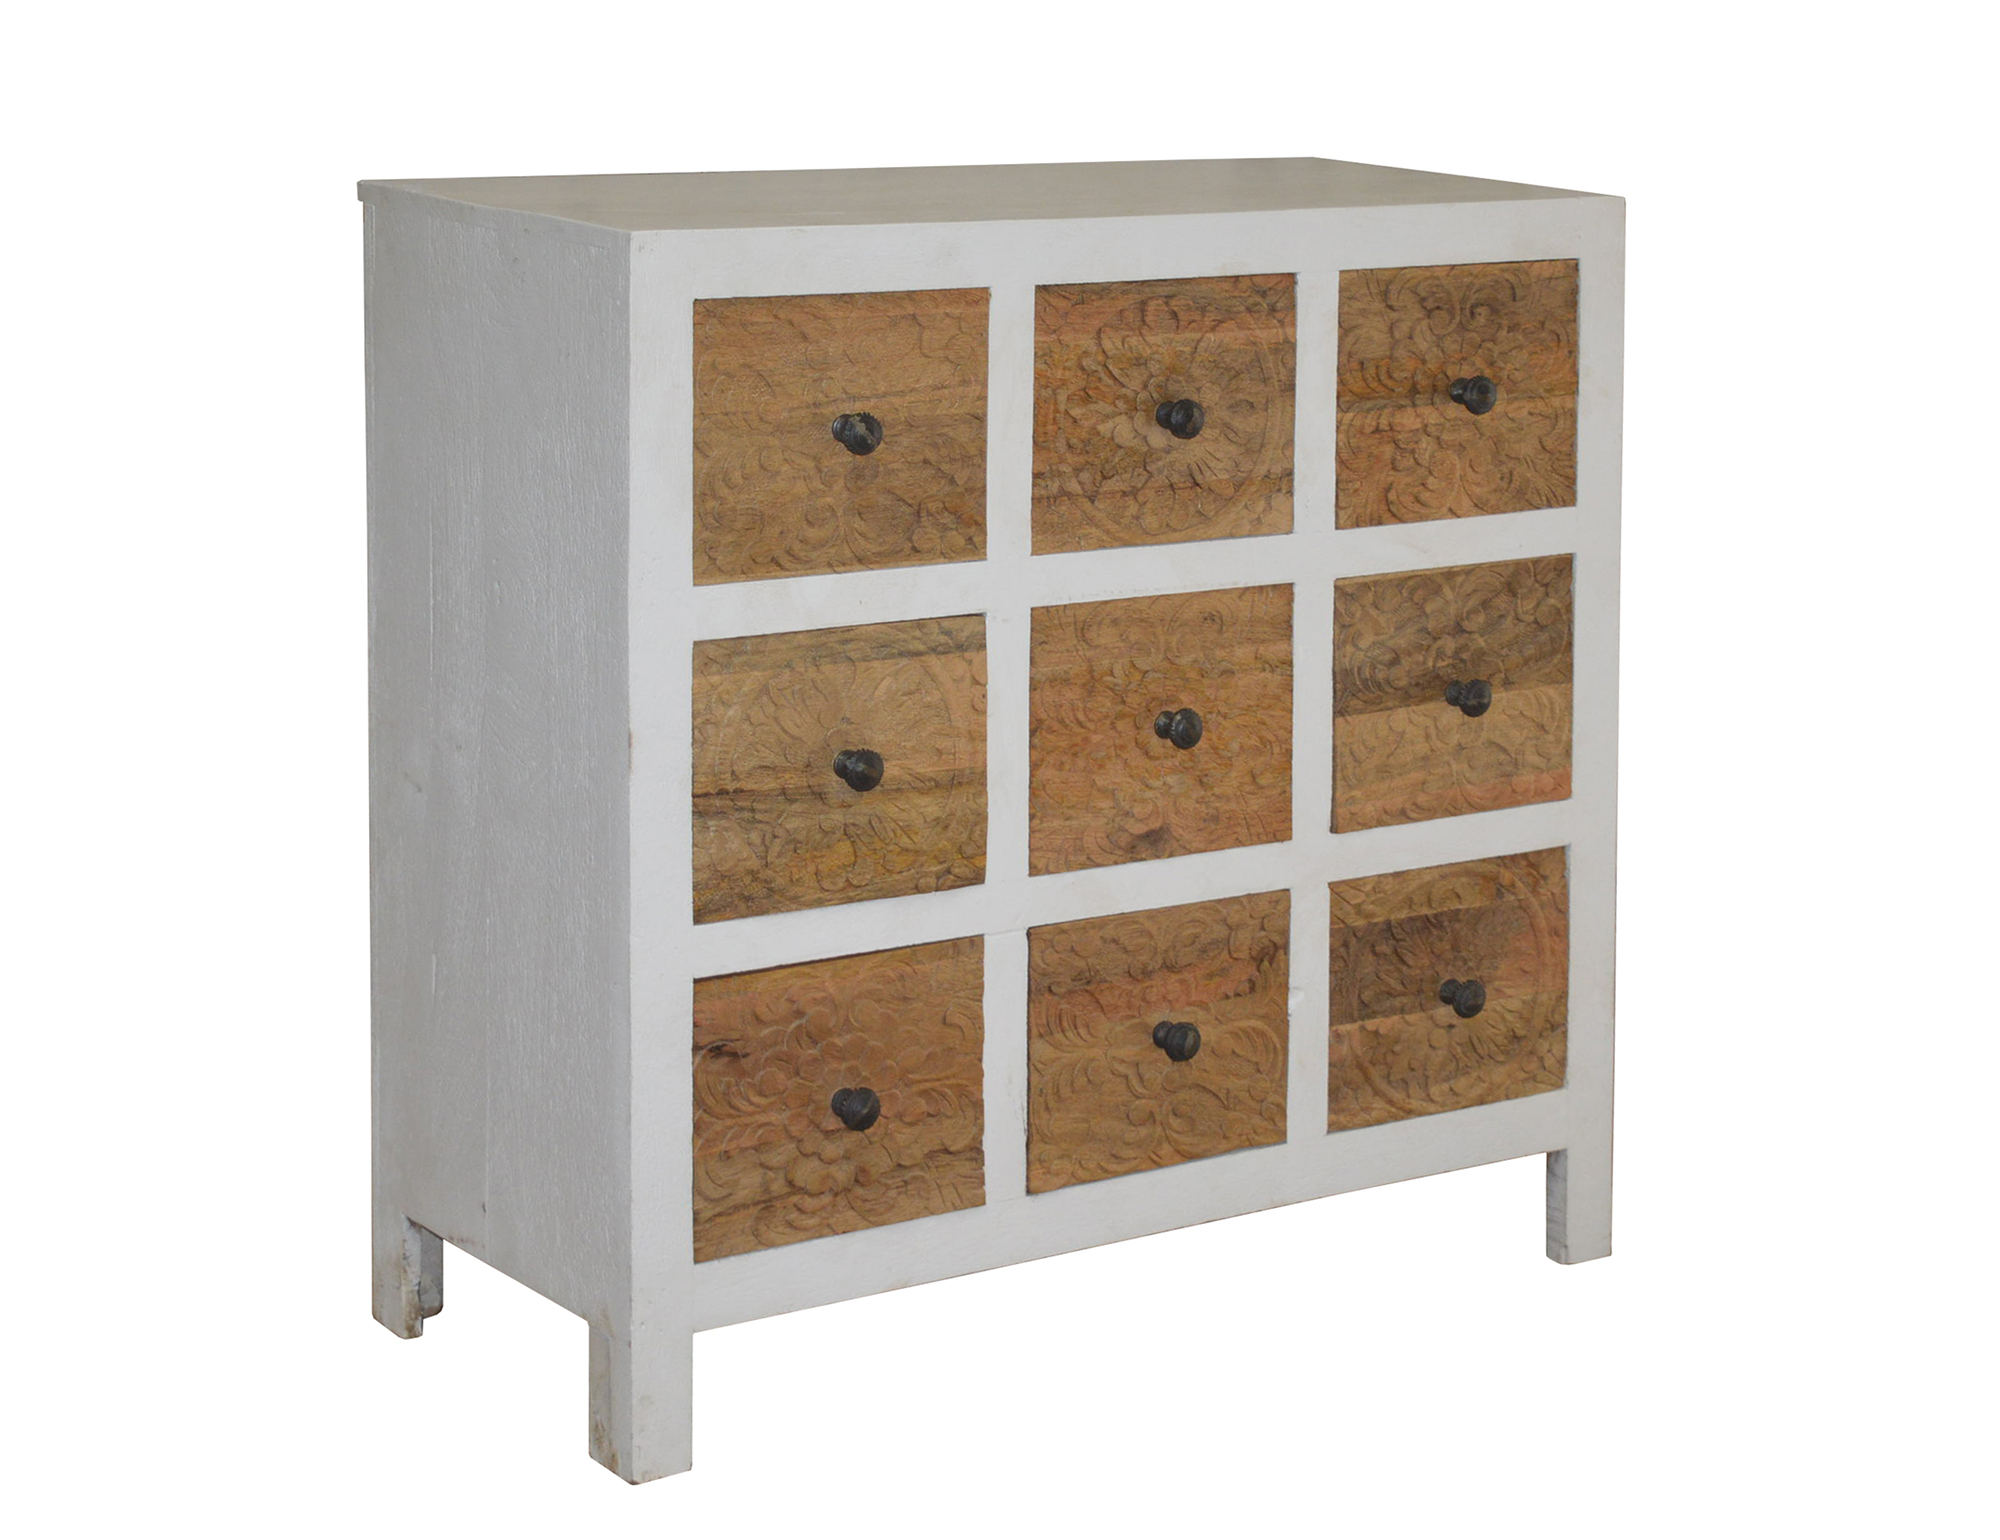 Adyar 9 Drawer Chest